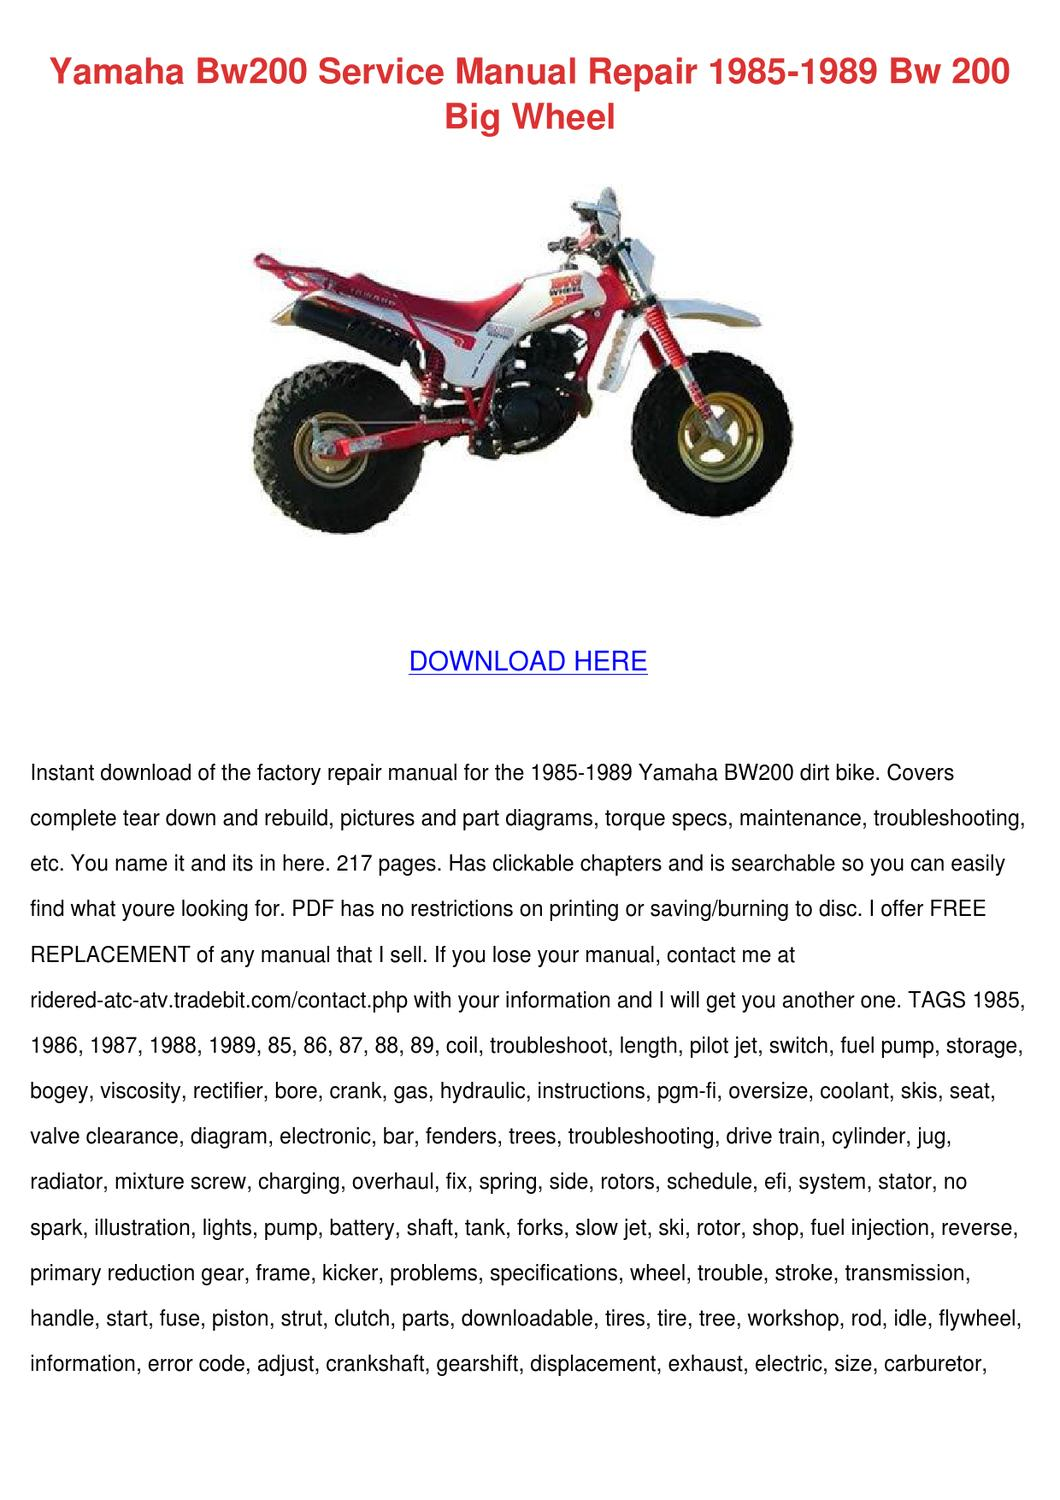 yamaha bw200 service manual repair 1985 1989 by. Black Bedroom Furniture Sets. Home Design Ideas